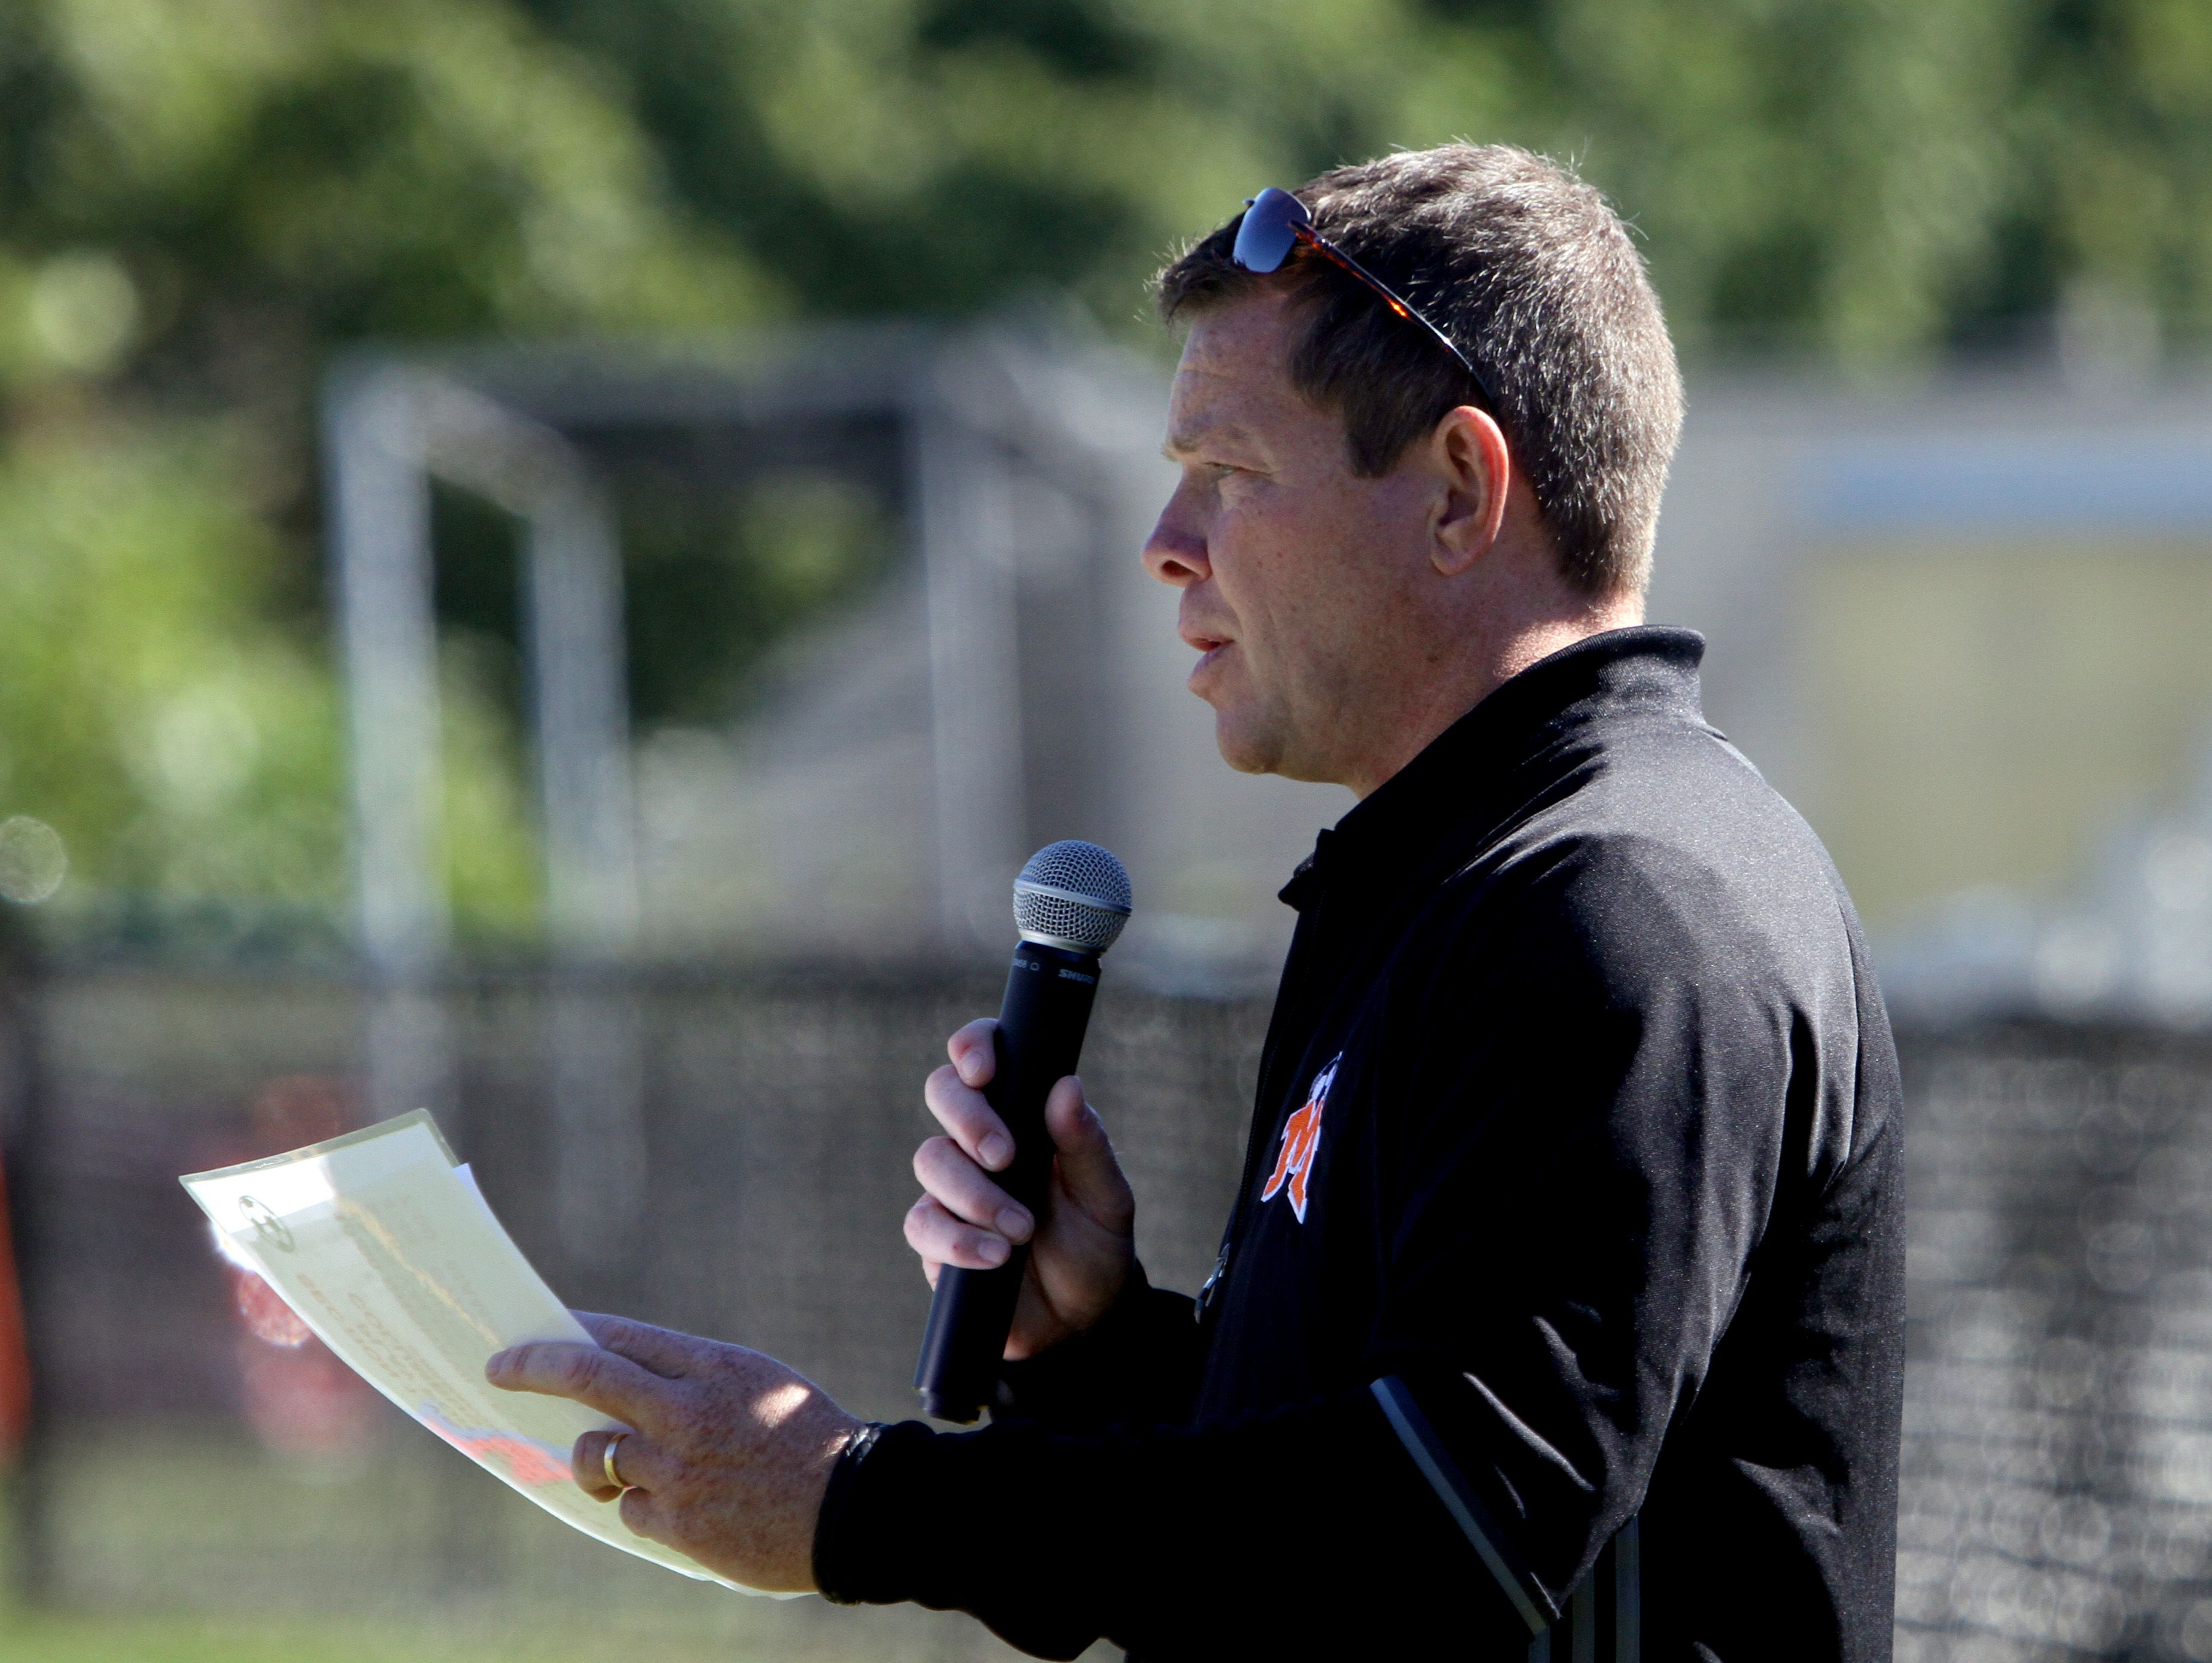 Mamaroneck High School soccer coach Rich Becker announces the teams during a game in the Section 1 vs. Section 9 boys soccer challenge at Mamaroneck High School Oct. 10, 2016.